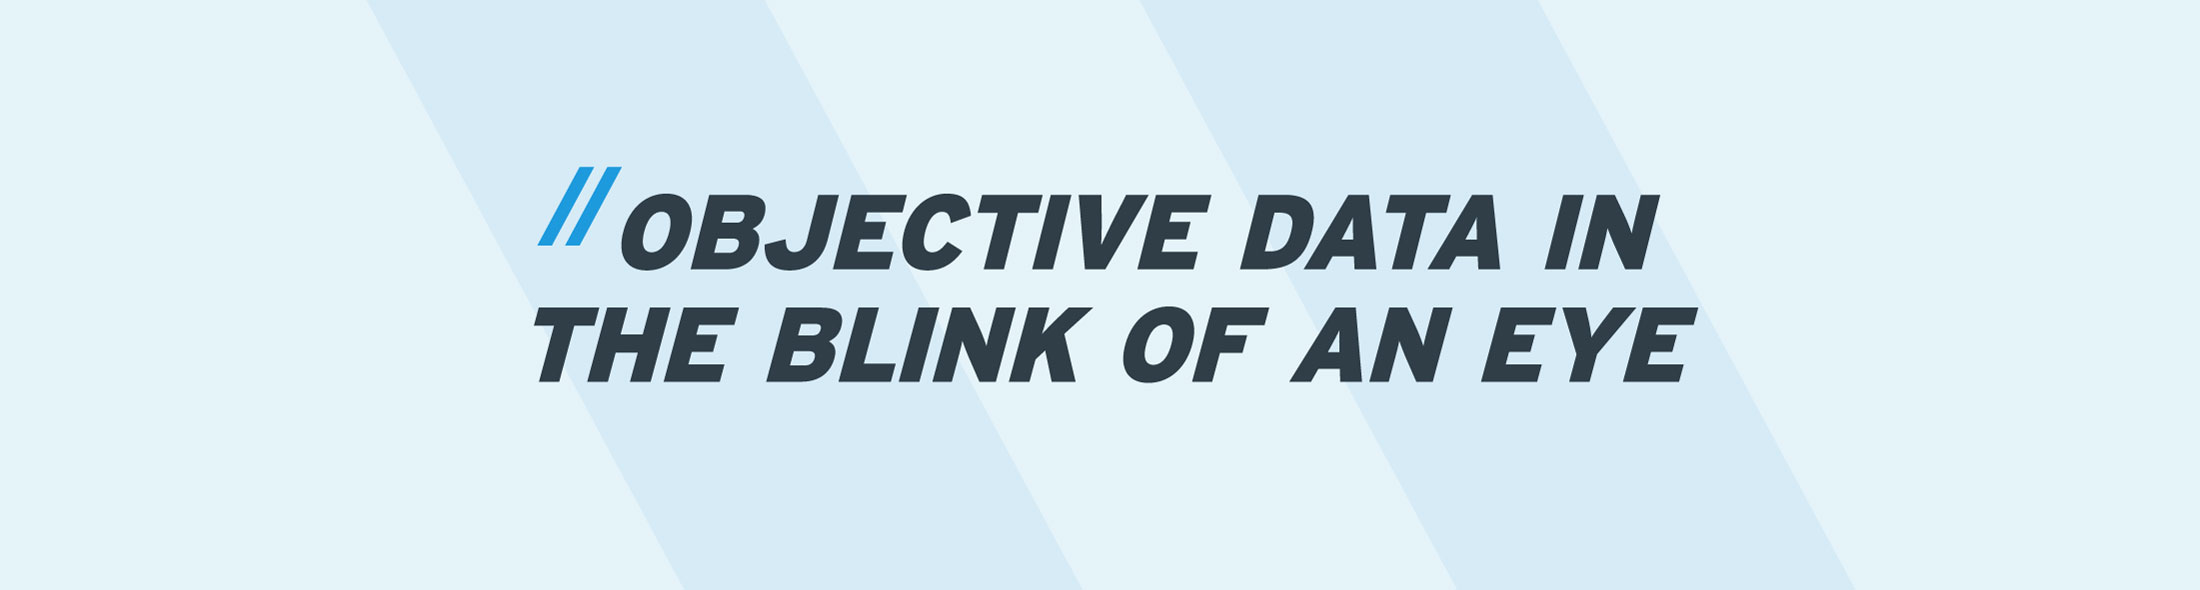 Objective data in the blink of an eye